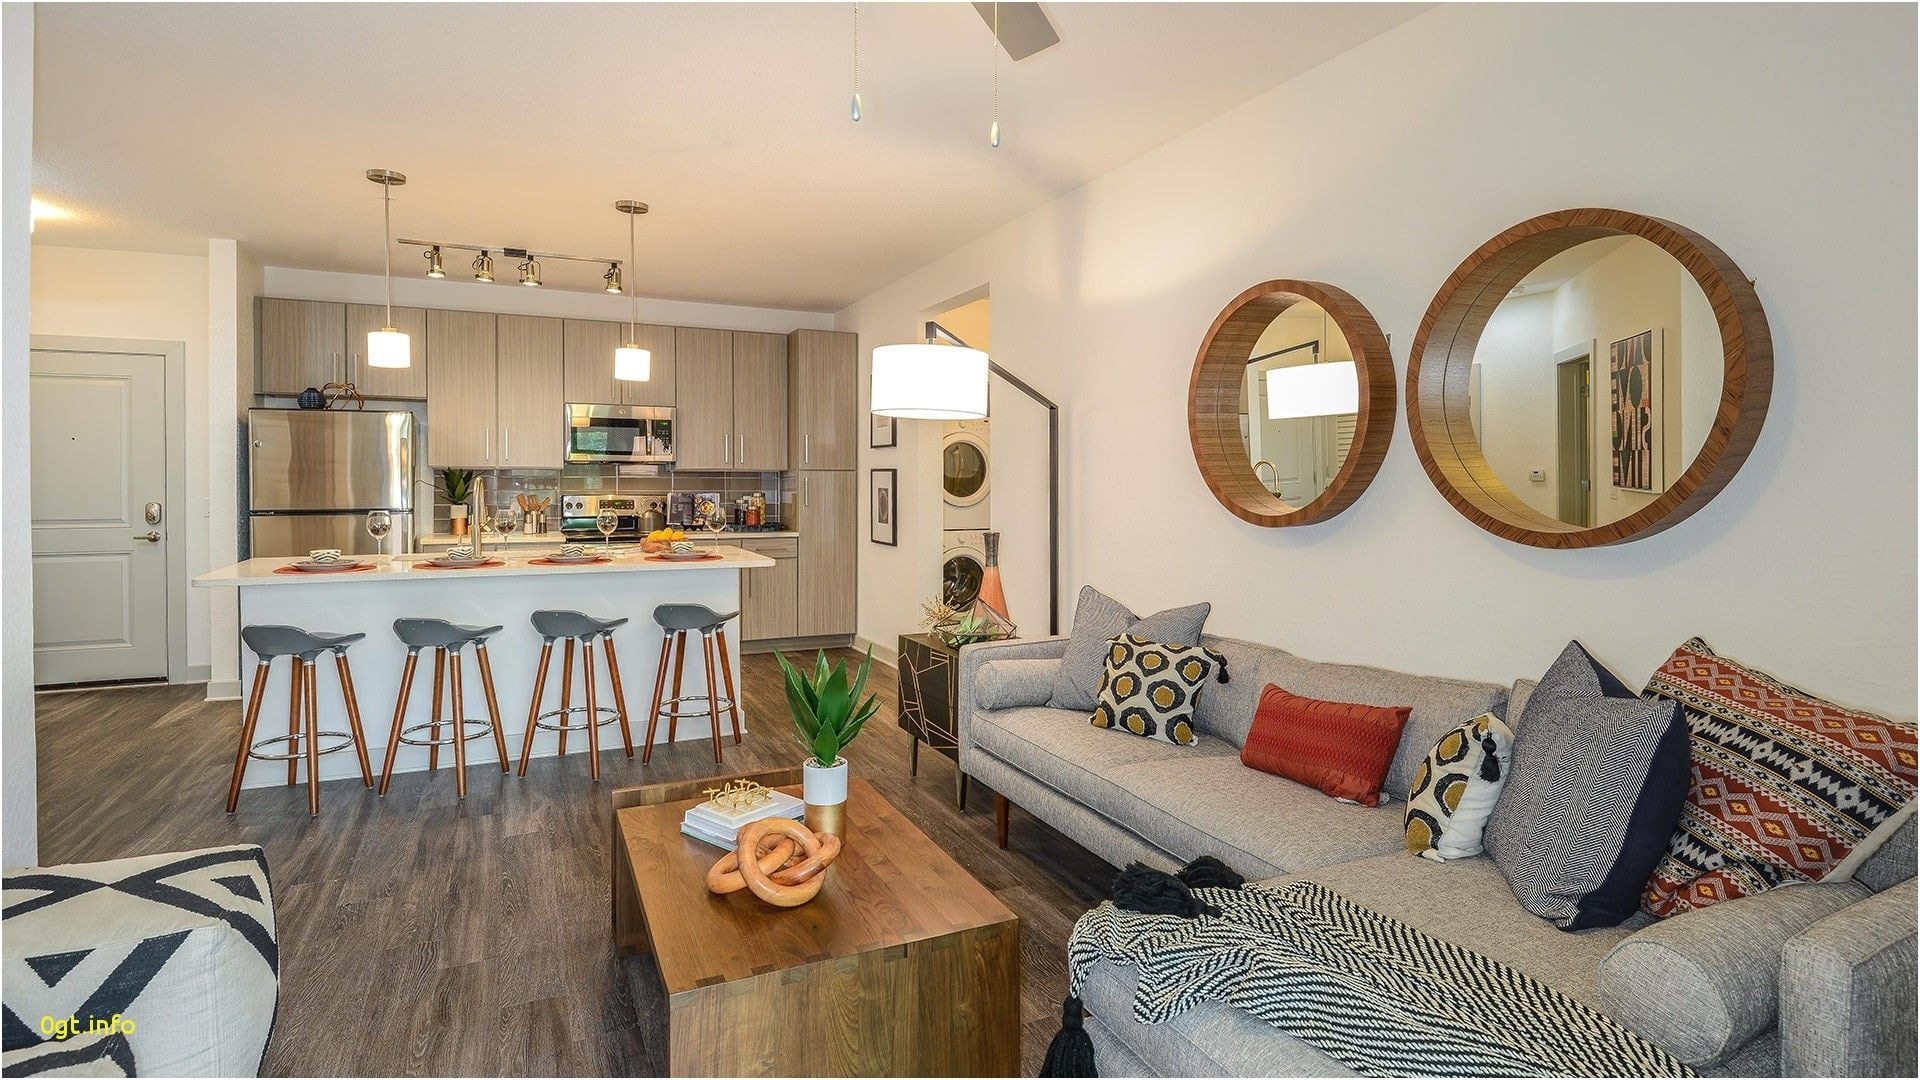 One Bedroom Apartments For Rent In Tampa Florida One Bedroom Apartment 1 Bedroom Apartment 2 Bedroom Apartment